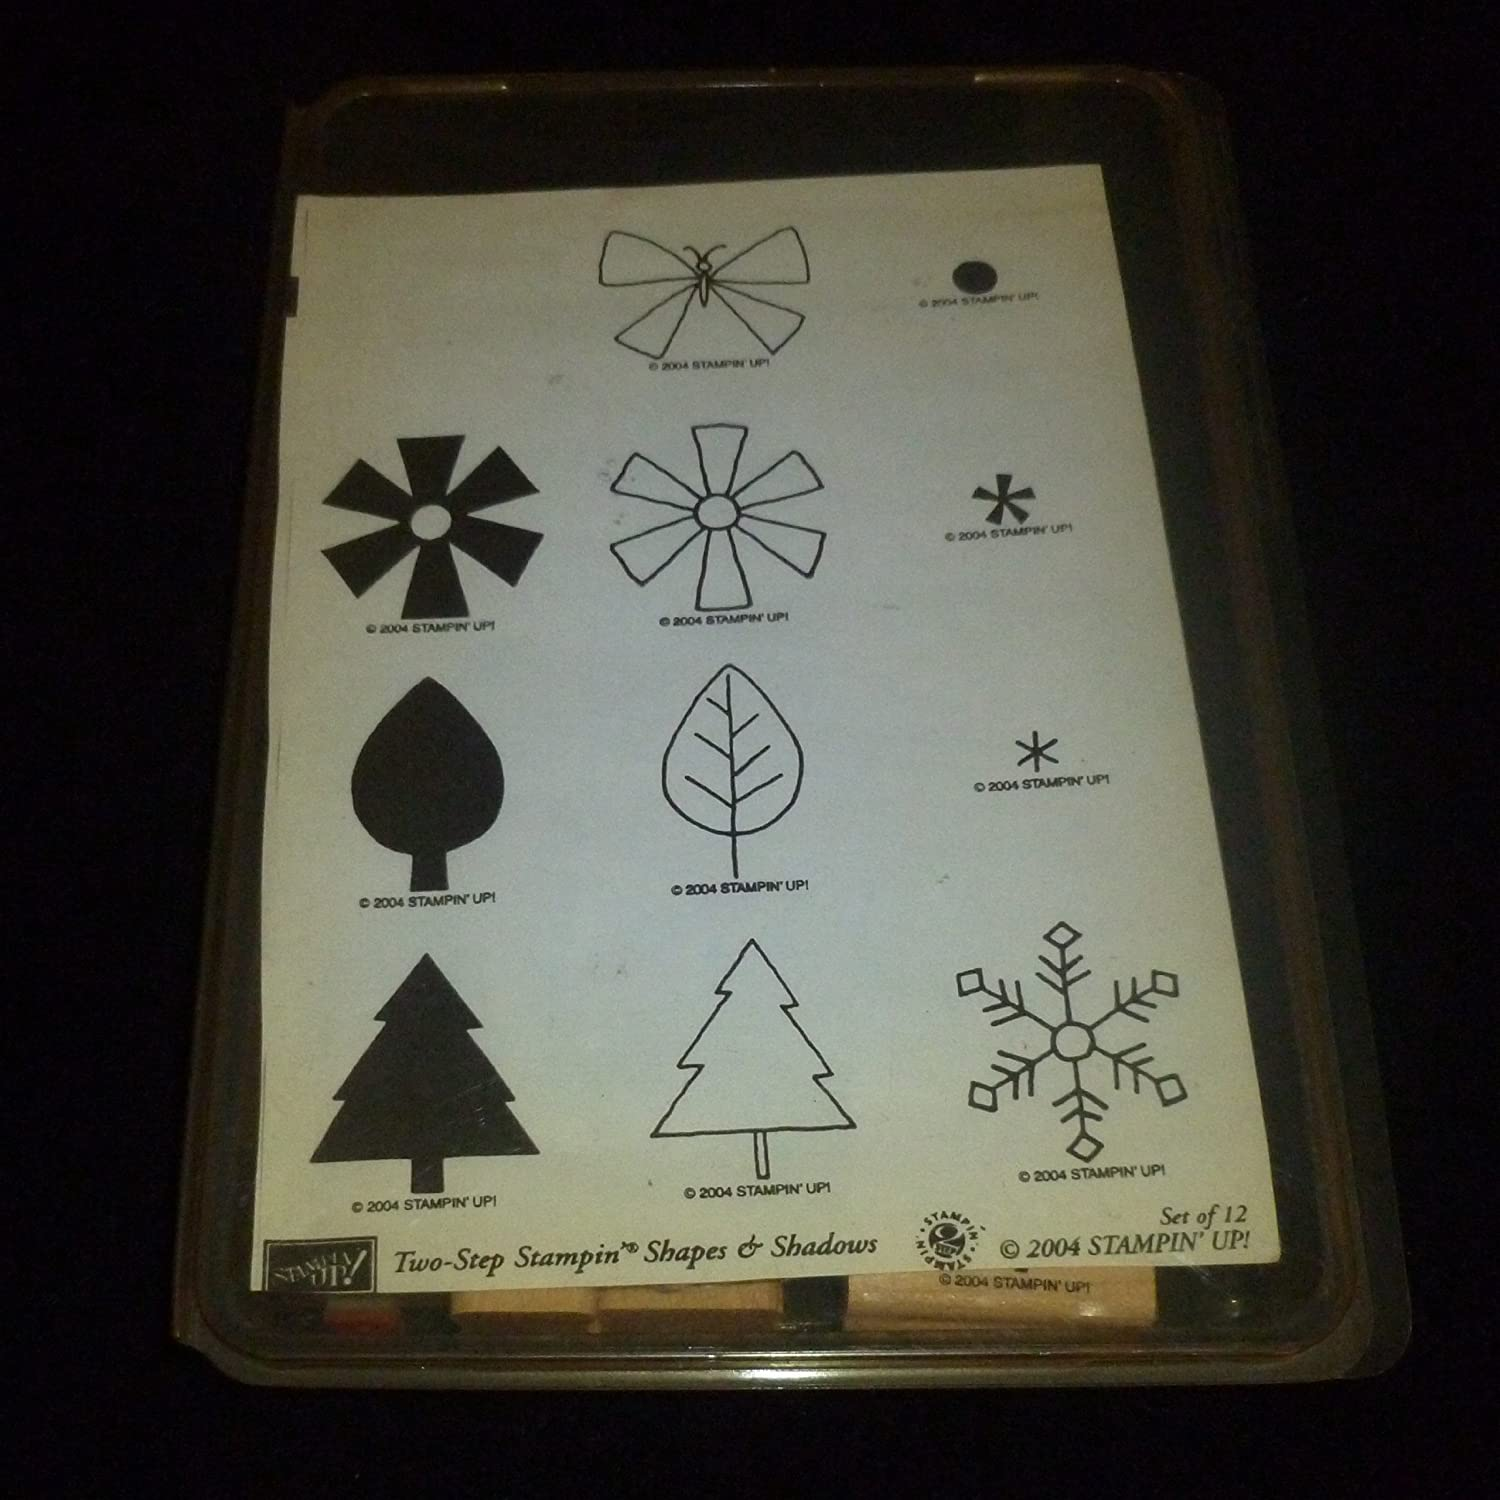 Stampin' Up TwoStep Stampin Shapes & Shadows Rubber Stamp Set